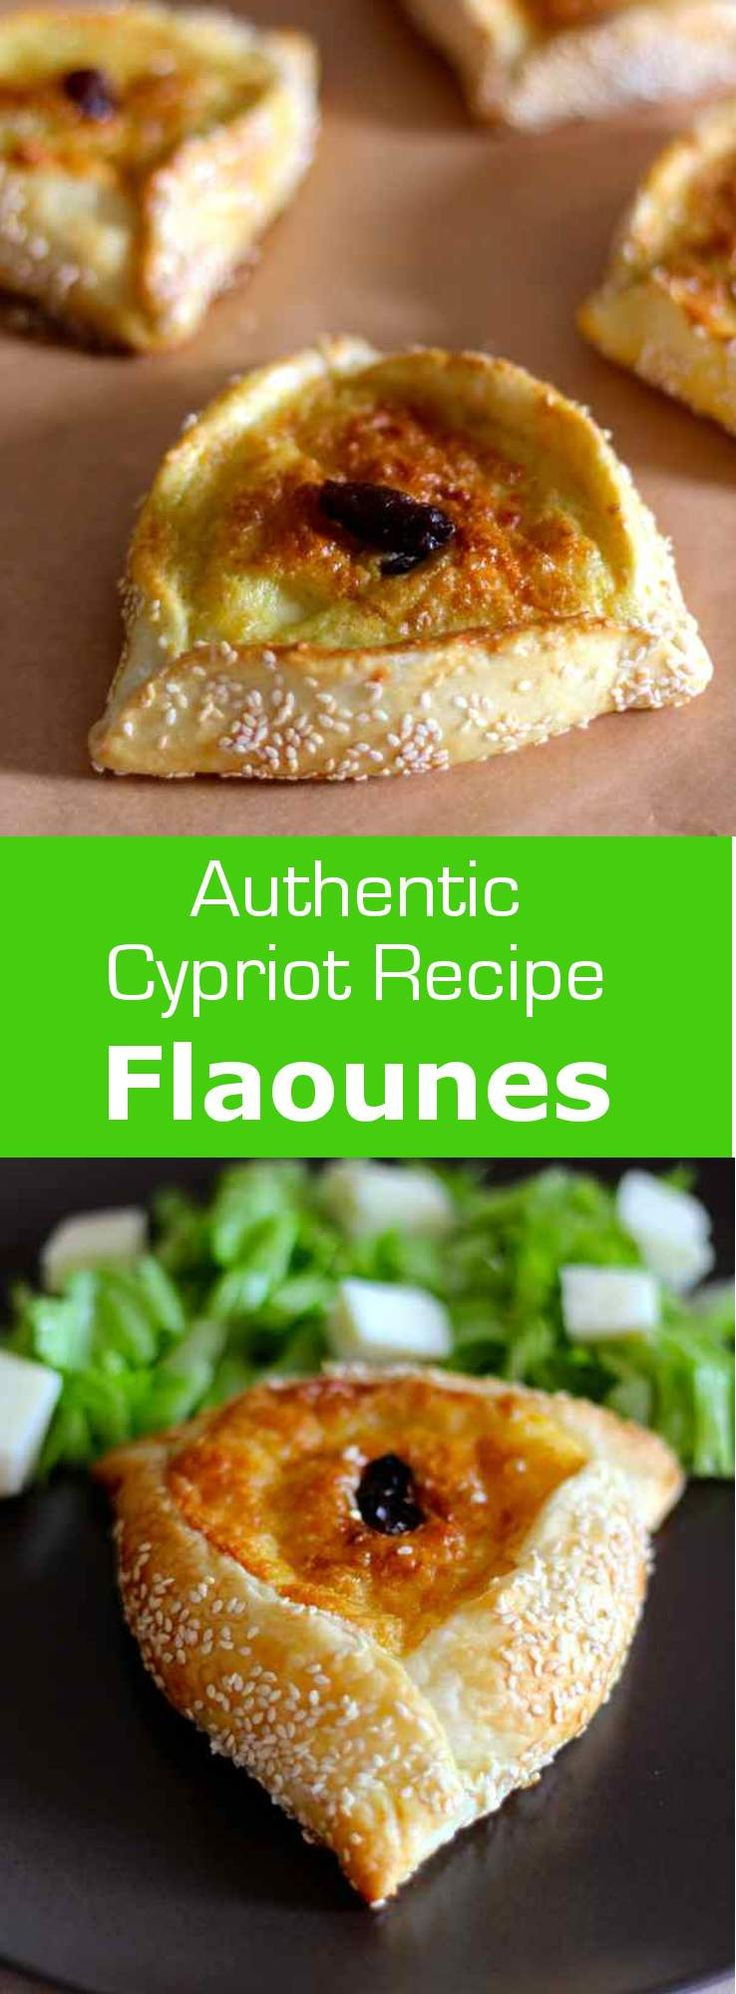 Flaounes are small traditional savory buns, stuffed with halloumi, prepared the week before Easter in Cyprus. #vegetarian #cyprus #cheese